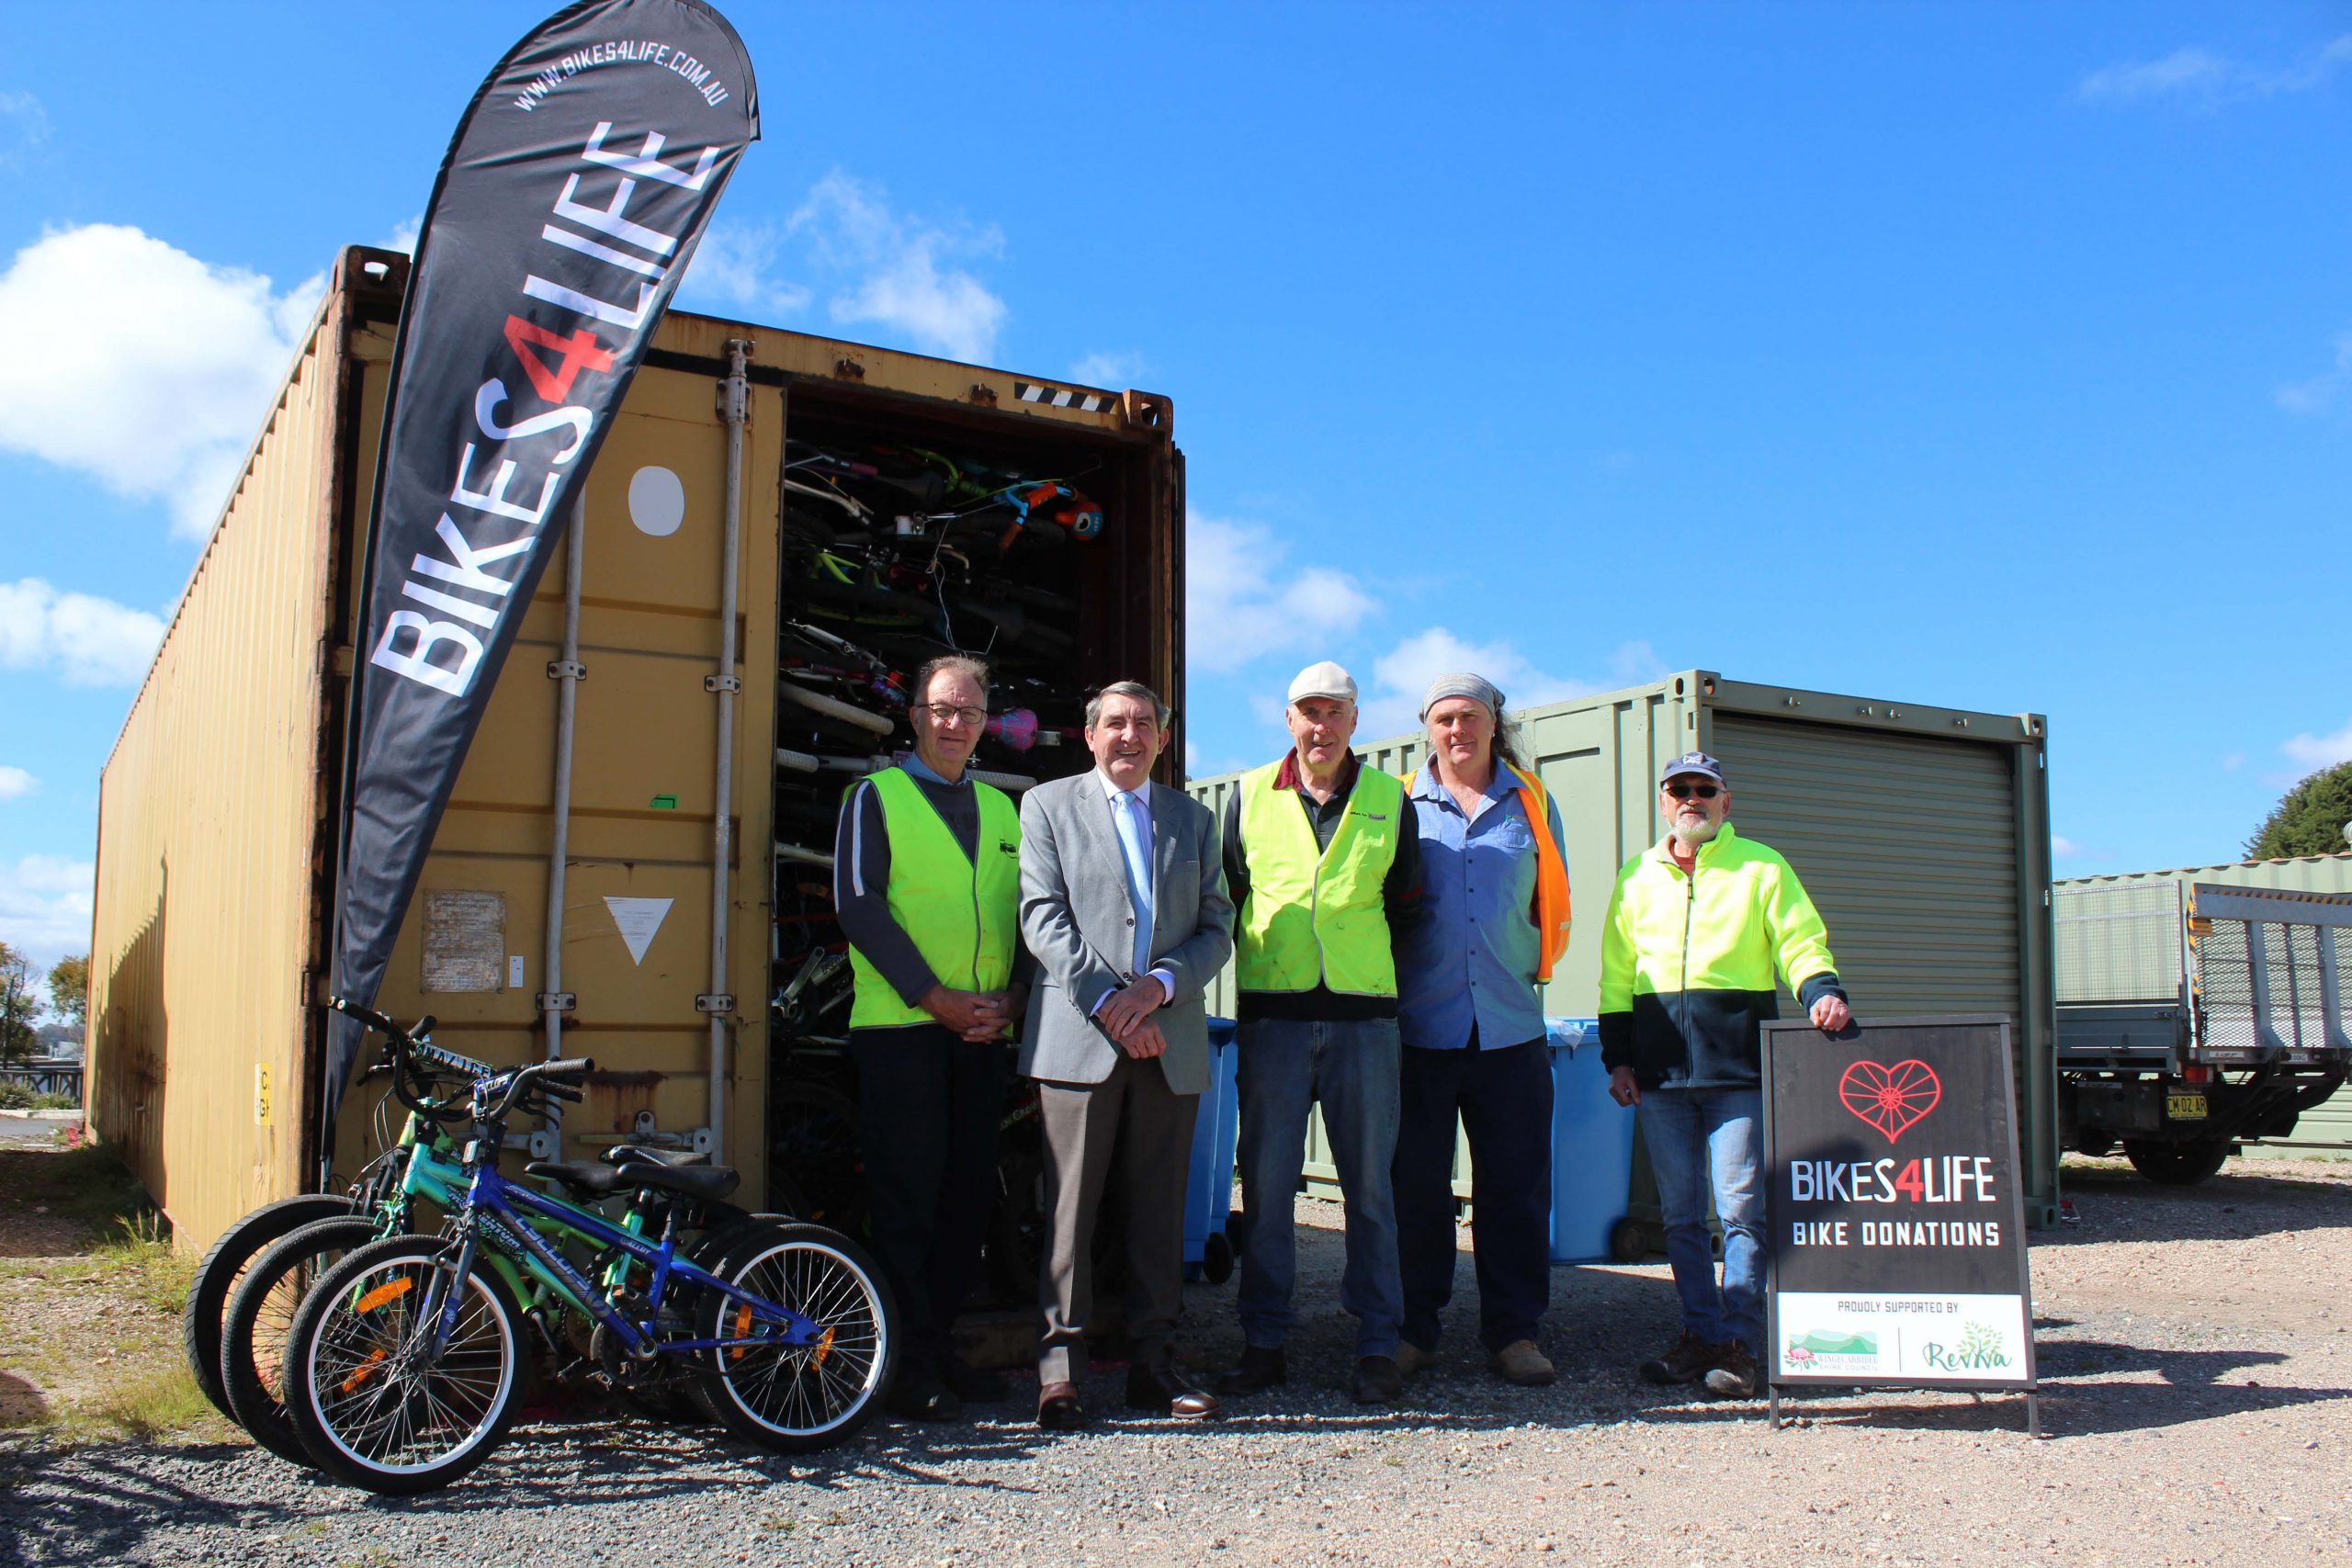 People pose in front of shipping container filled with bikes